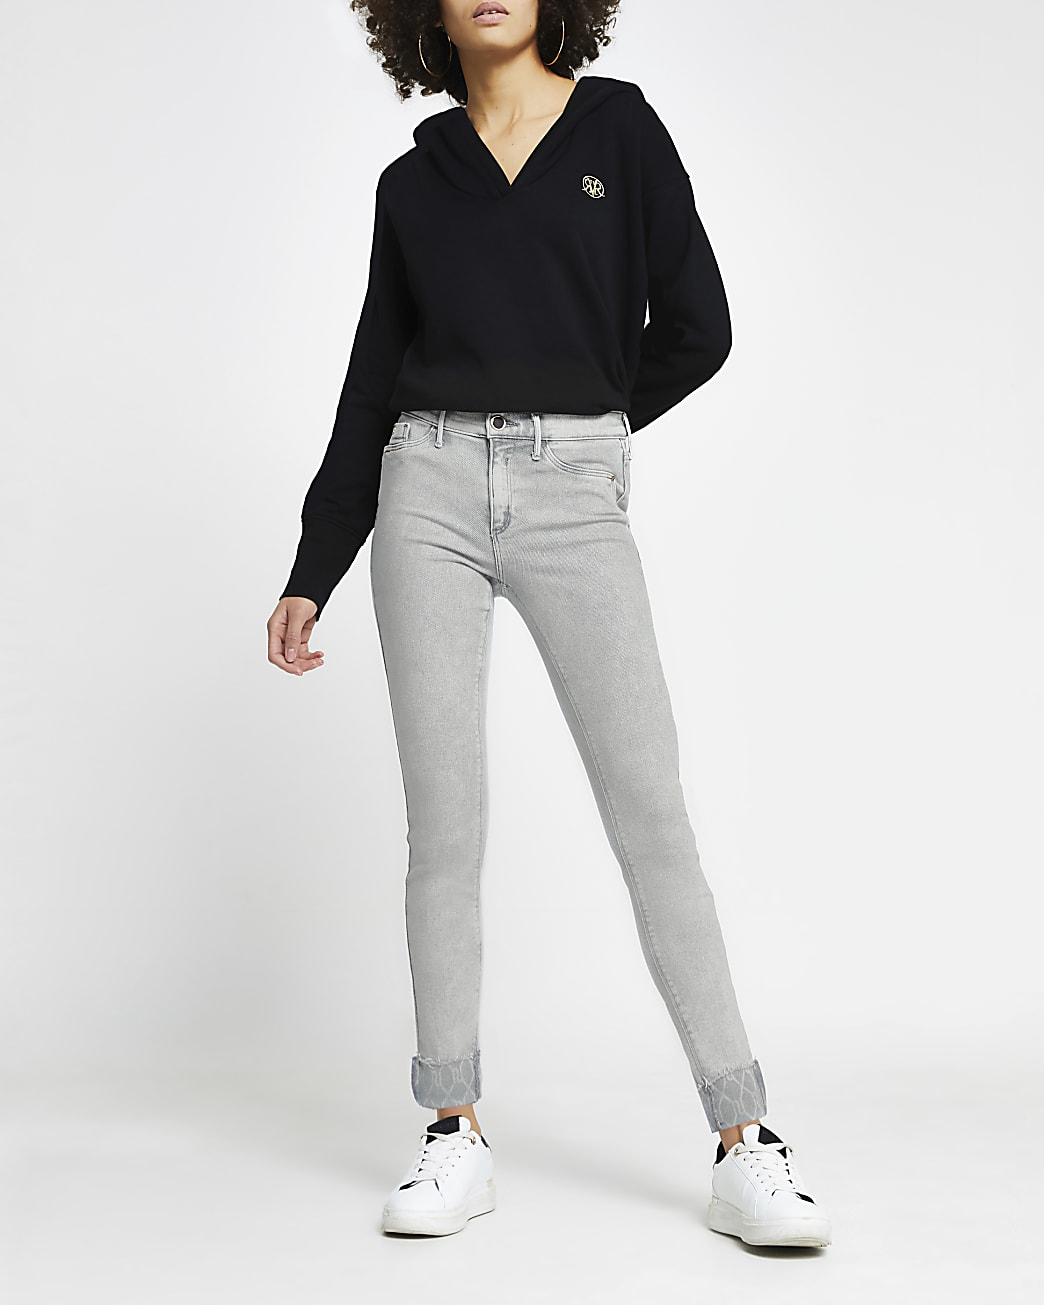 Grey Molly mid rise skinny jeans